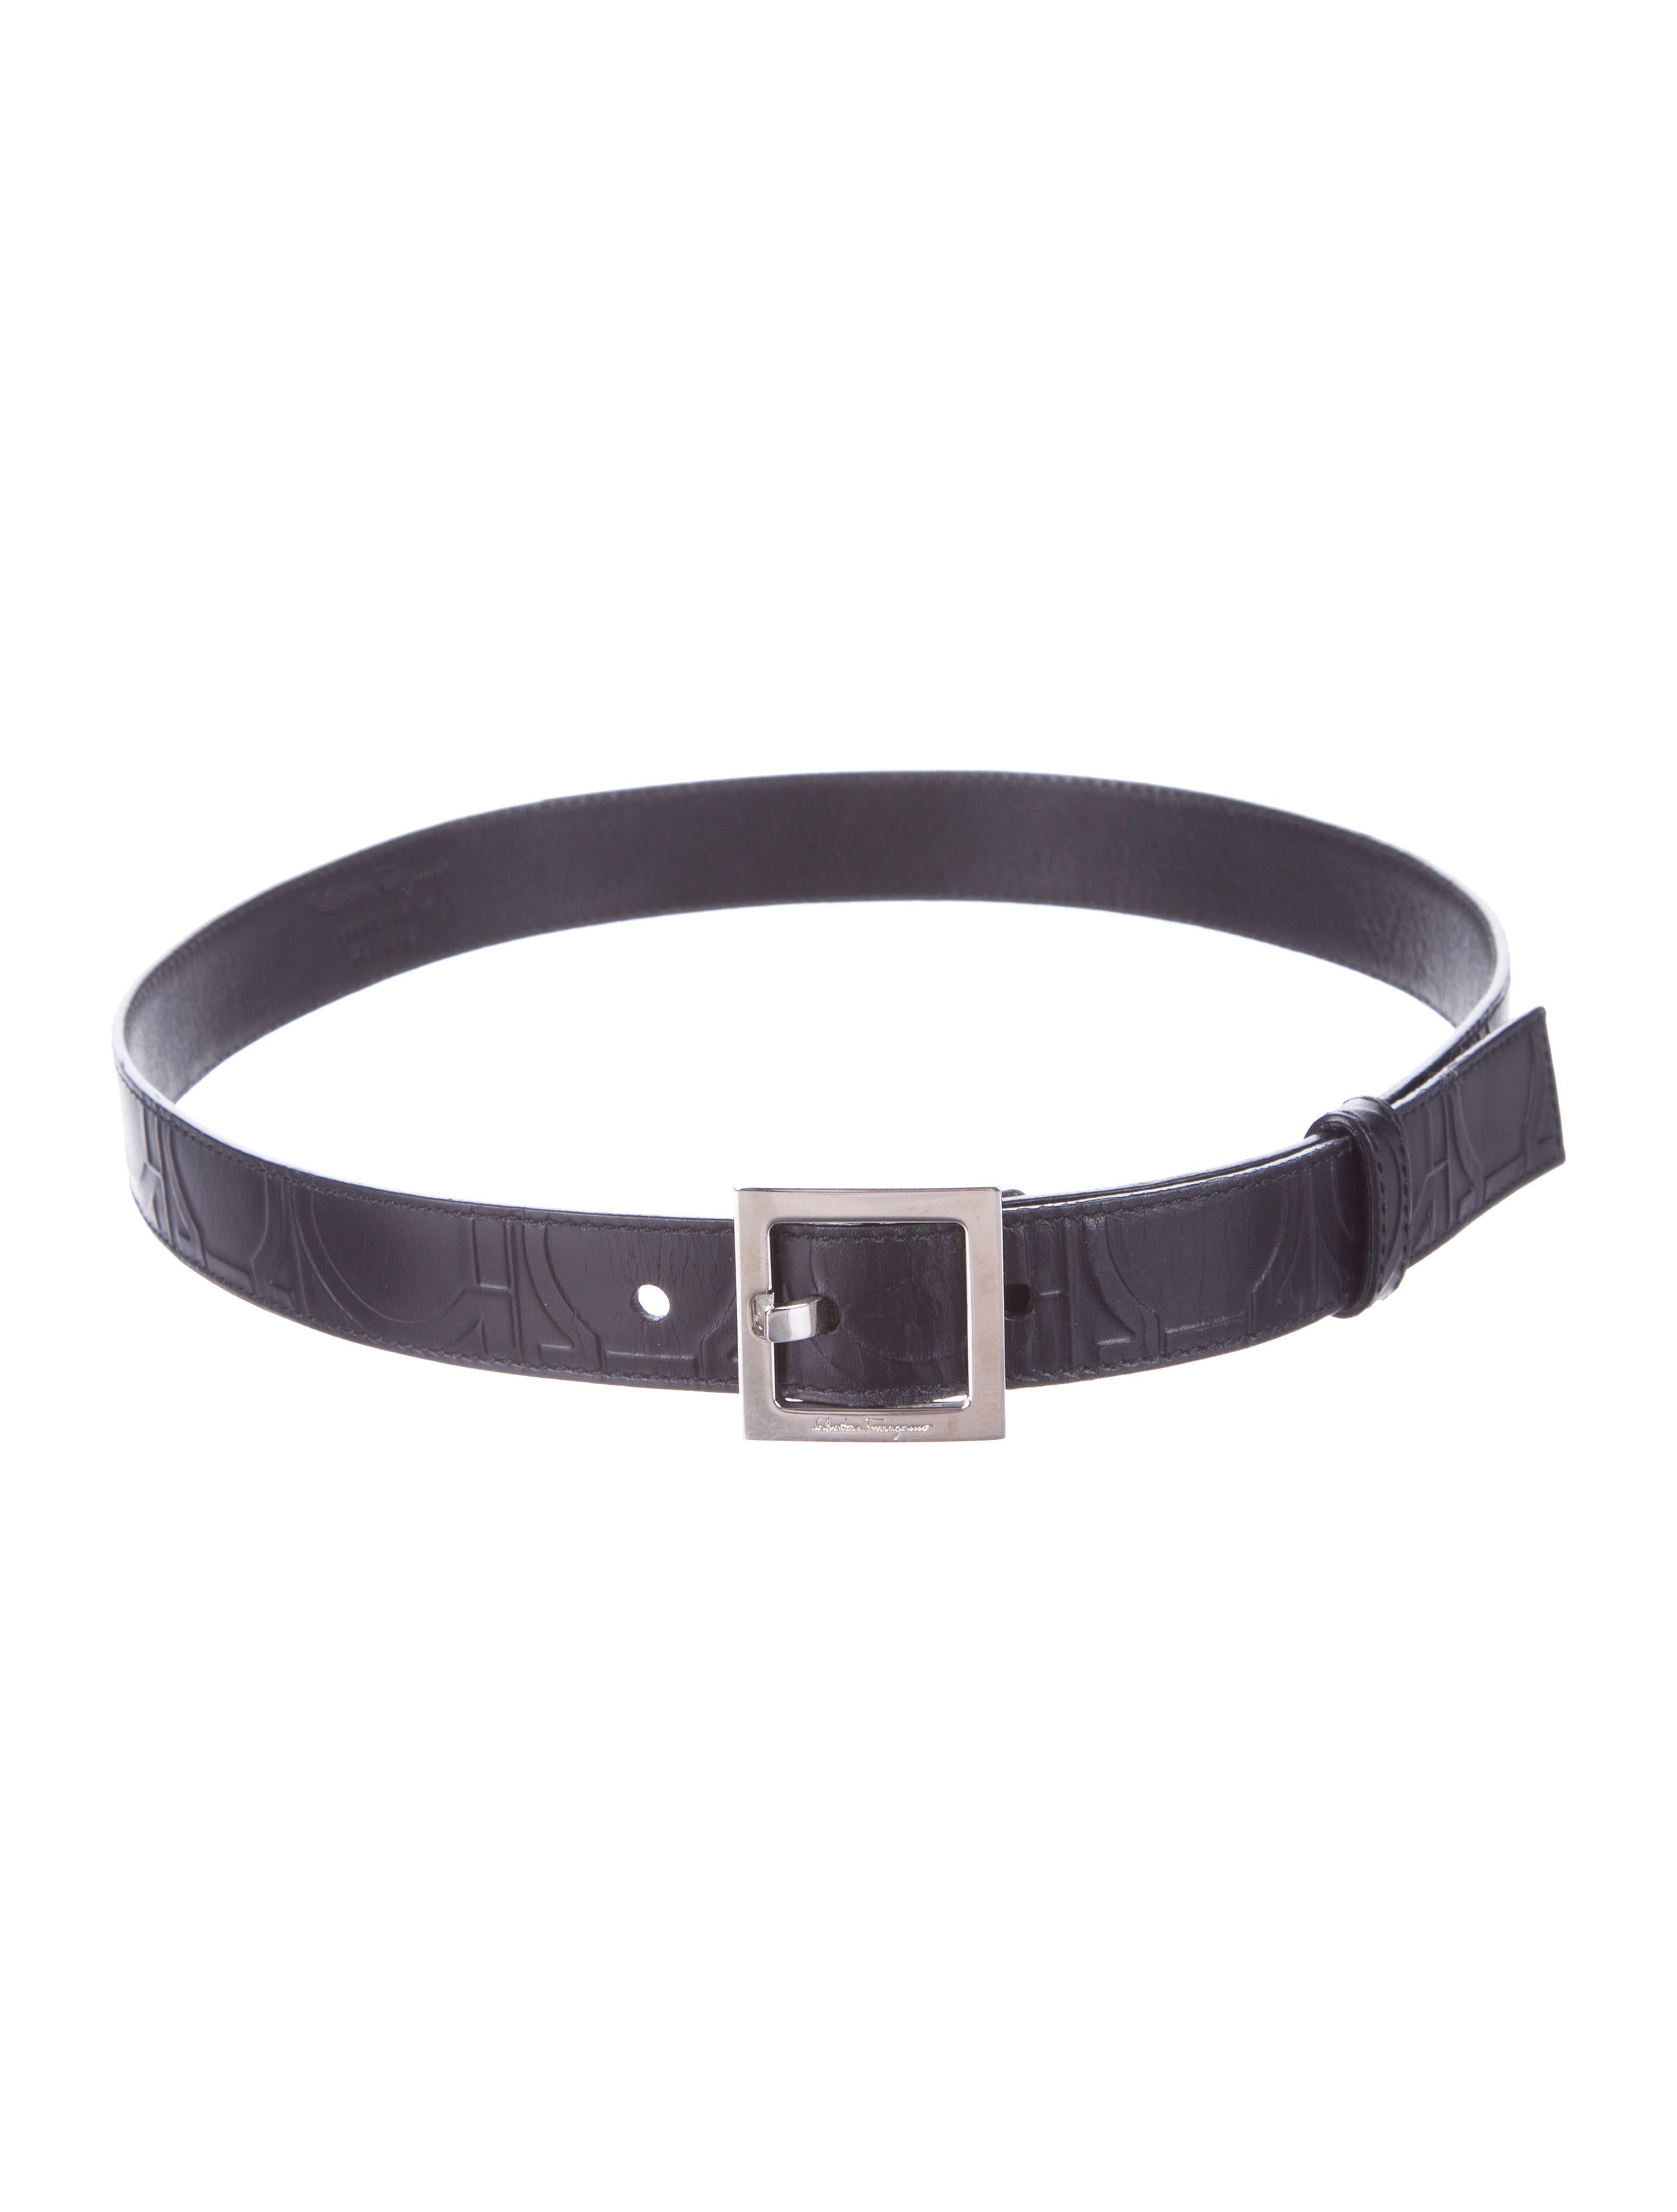 Salvatore Ferragamo Leather Belt - Accessories - SAL28513 ...